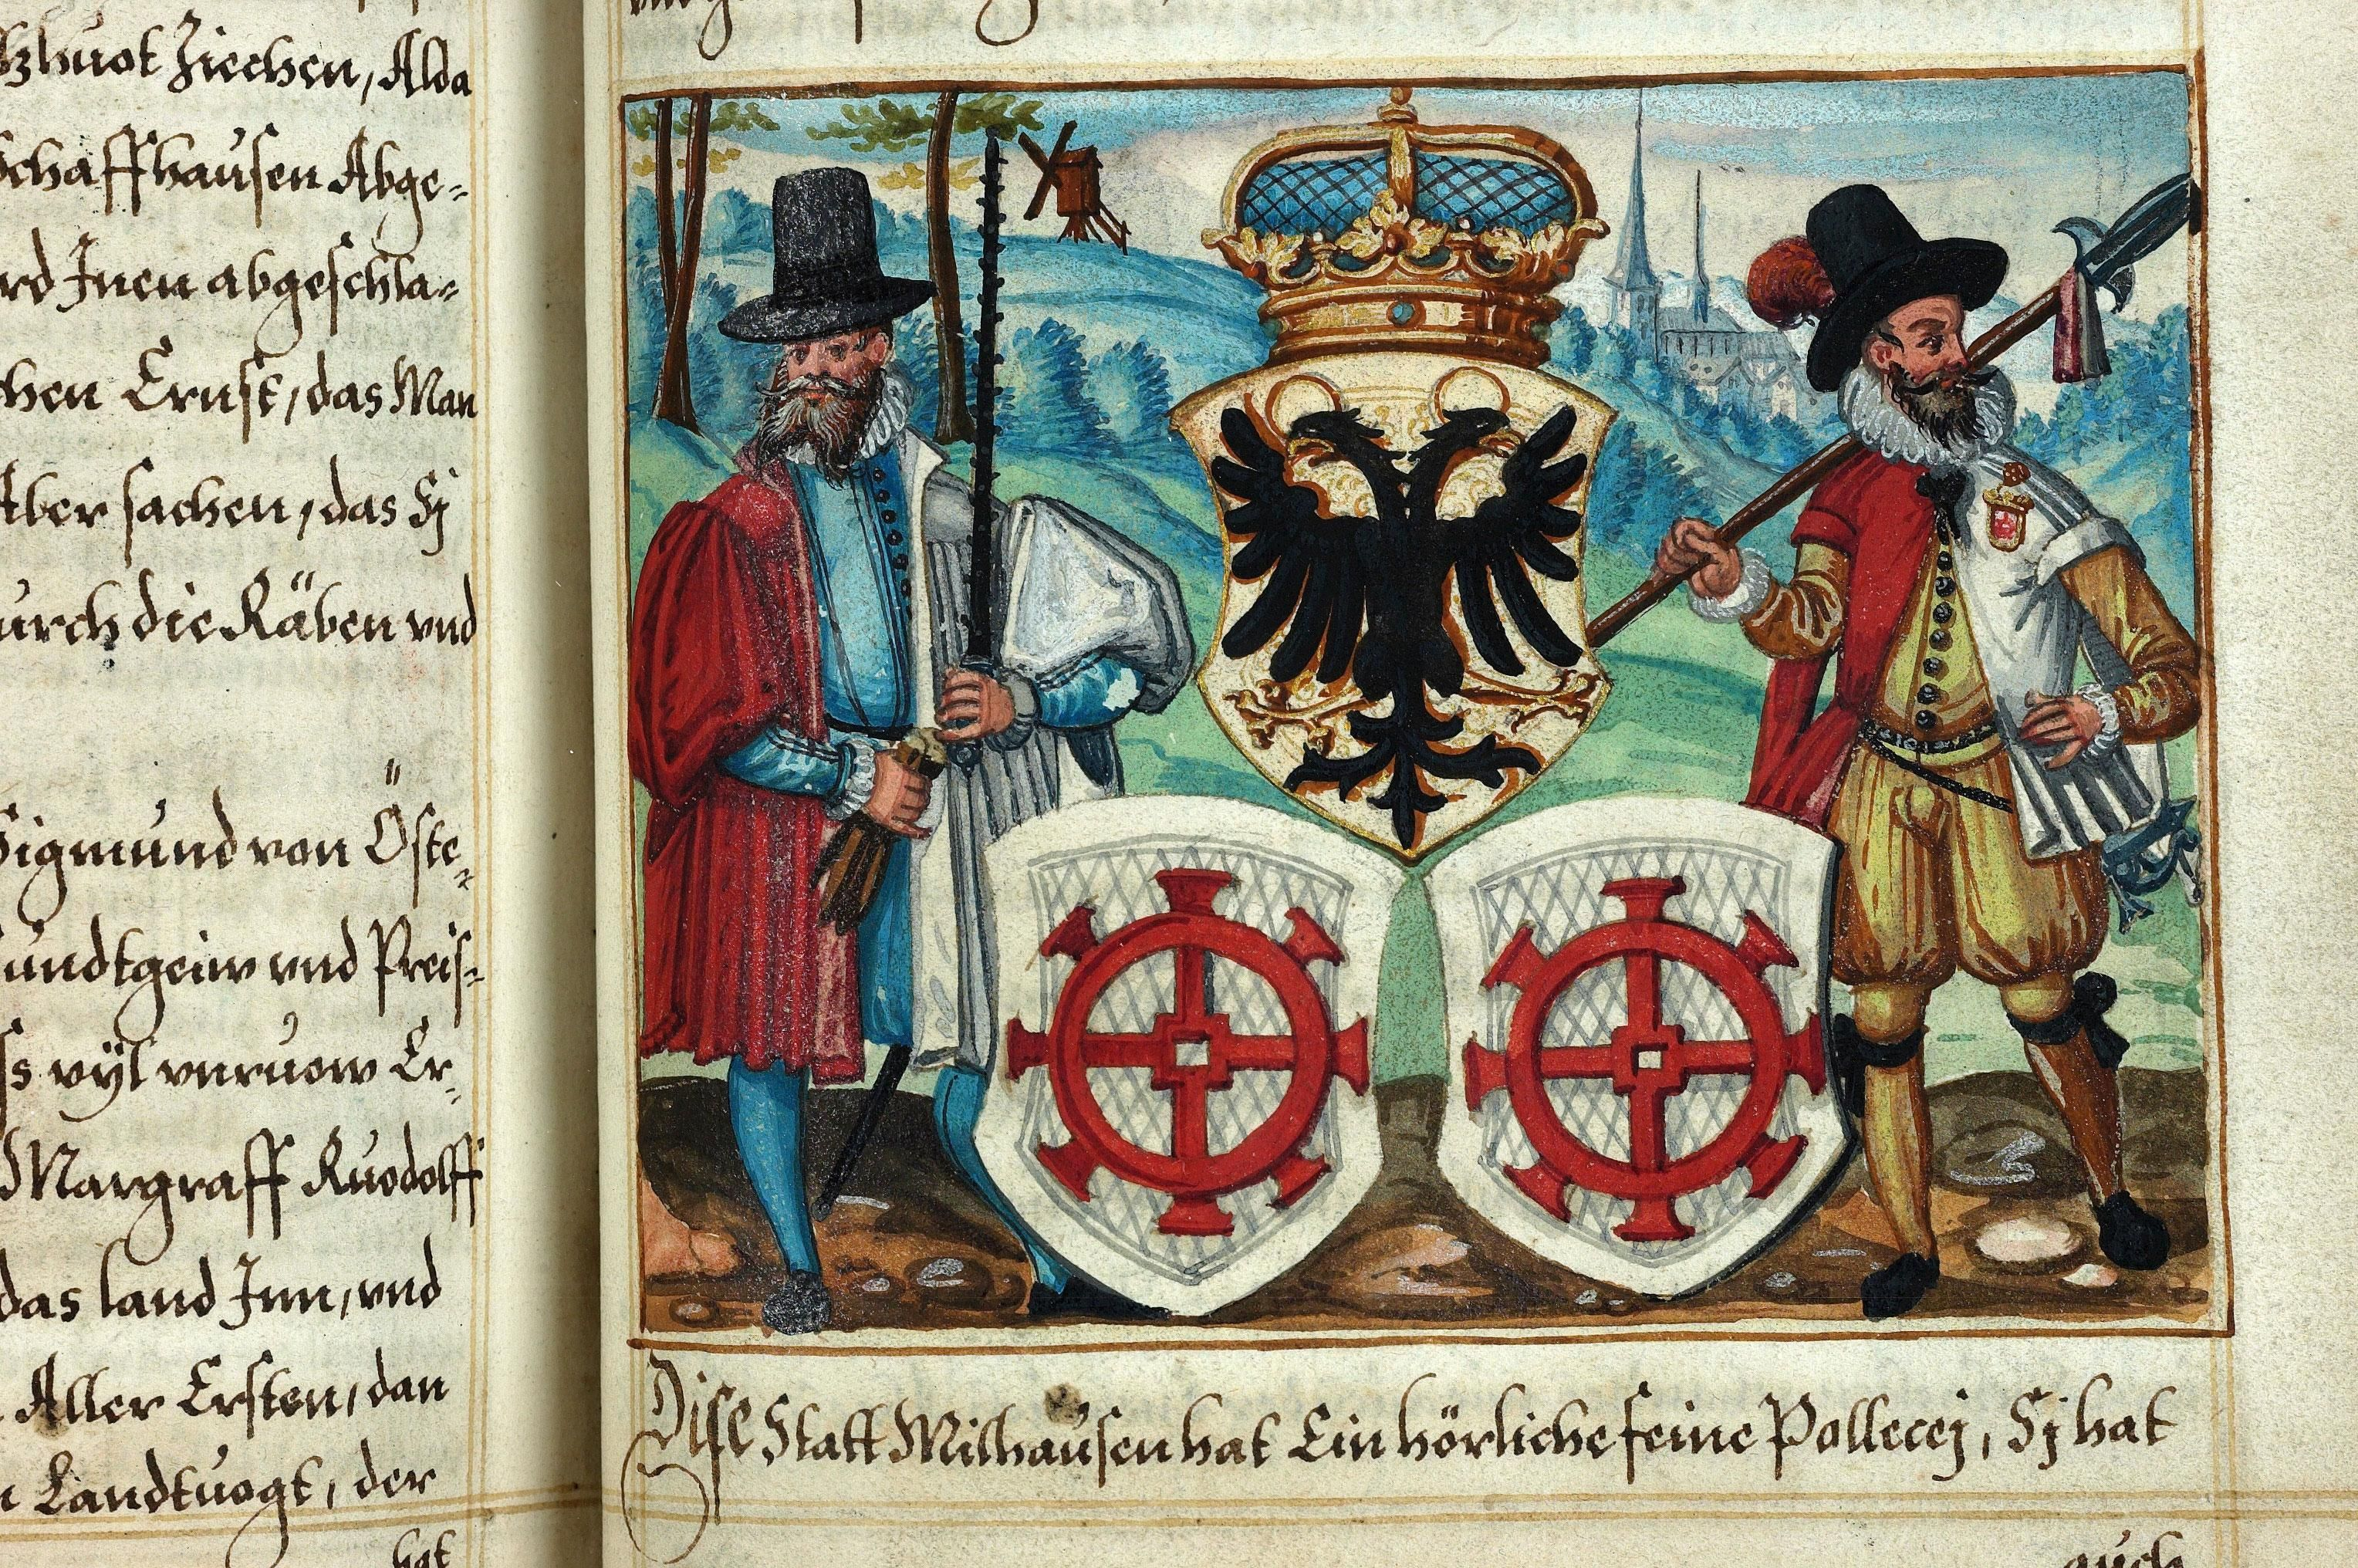 Heraldic detail from a 16th century Swiss chronicle